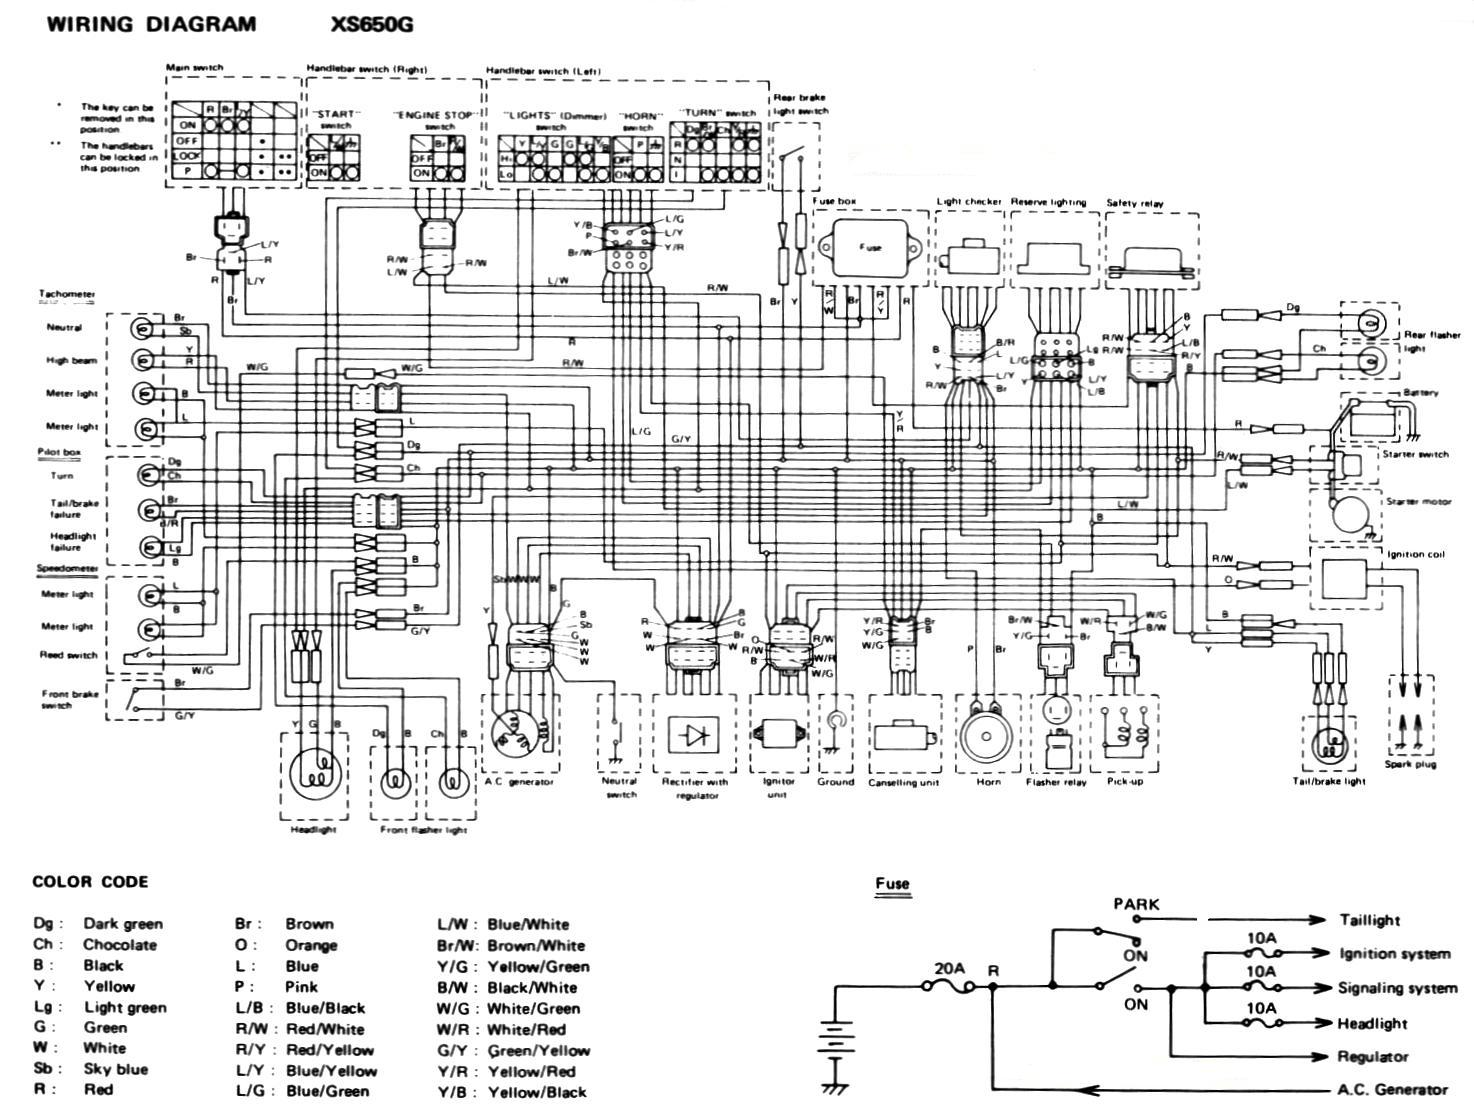 80XS650G wiring diagrams 81 kz440 wiring diagram at bakdesigns.co